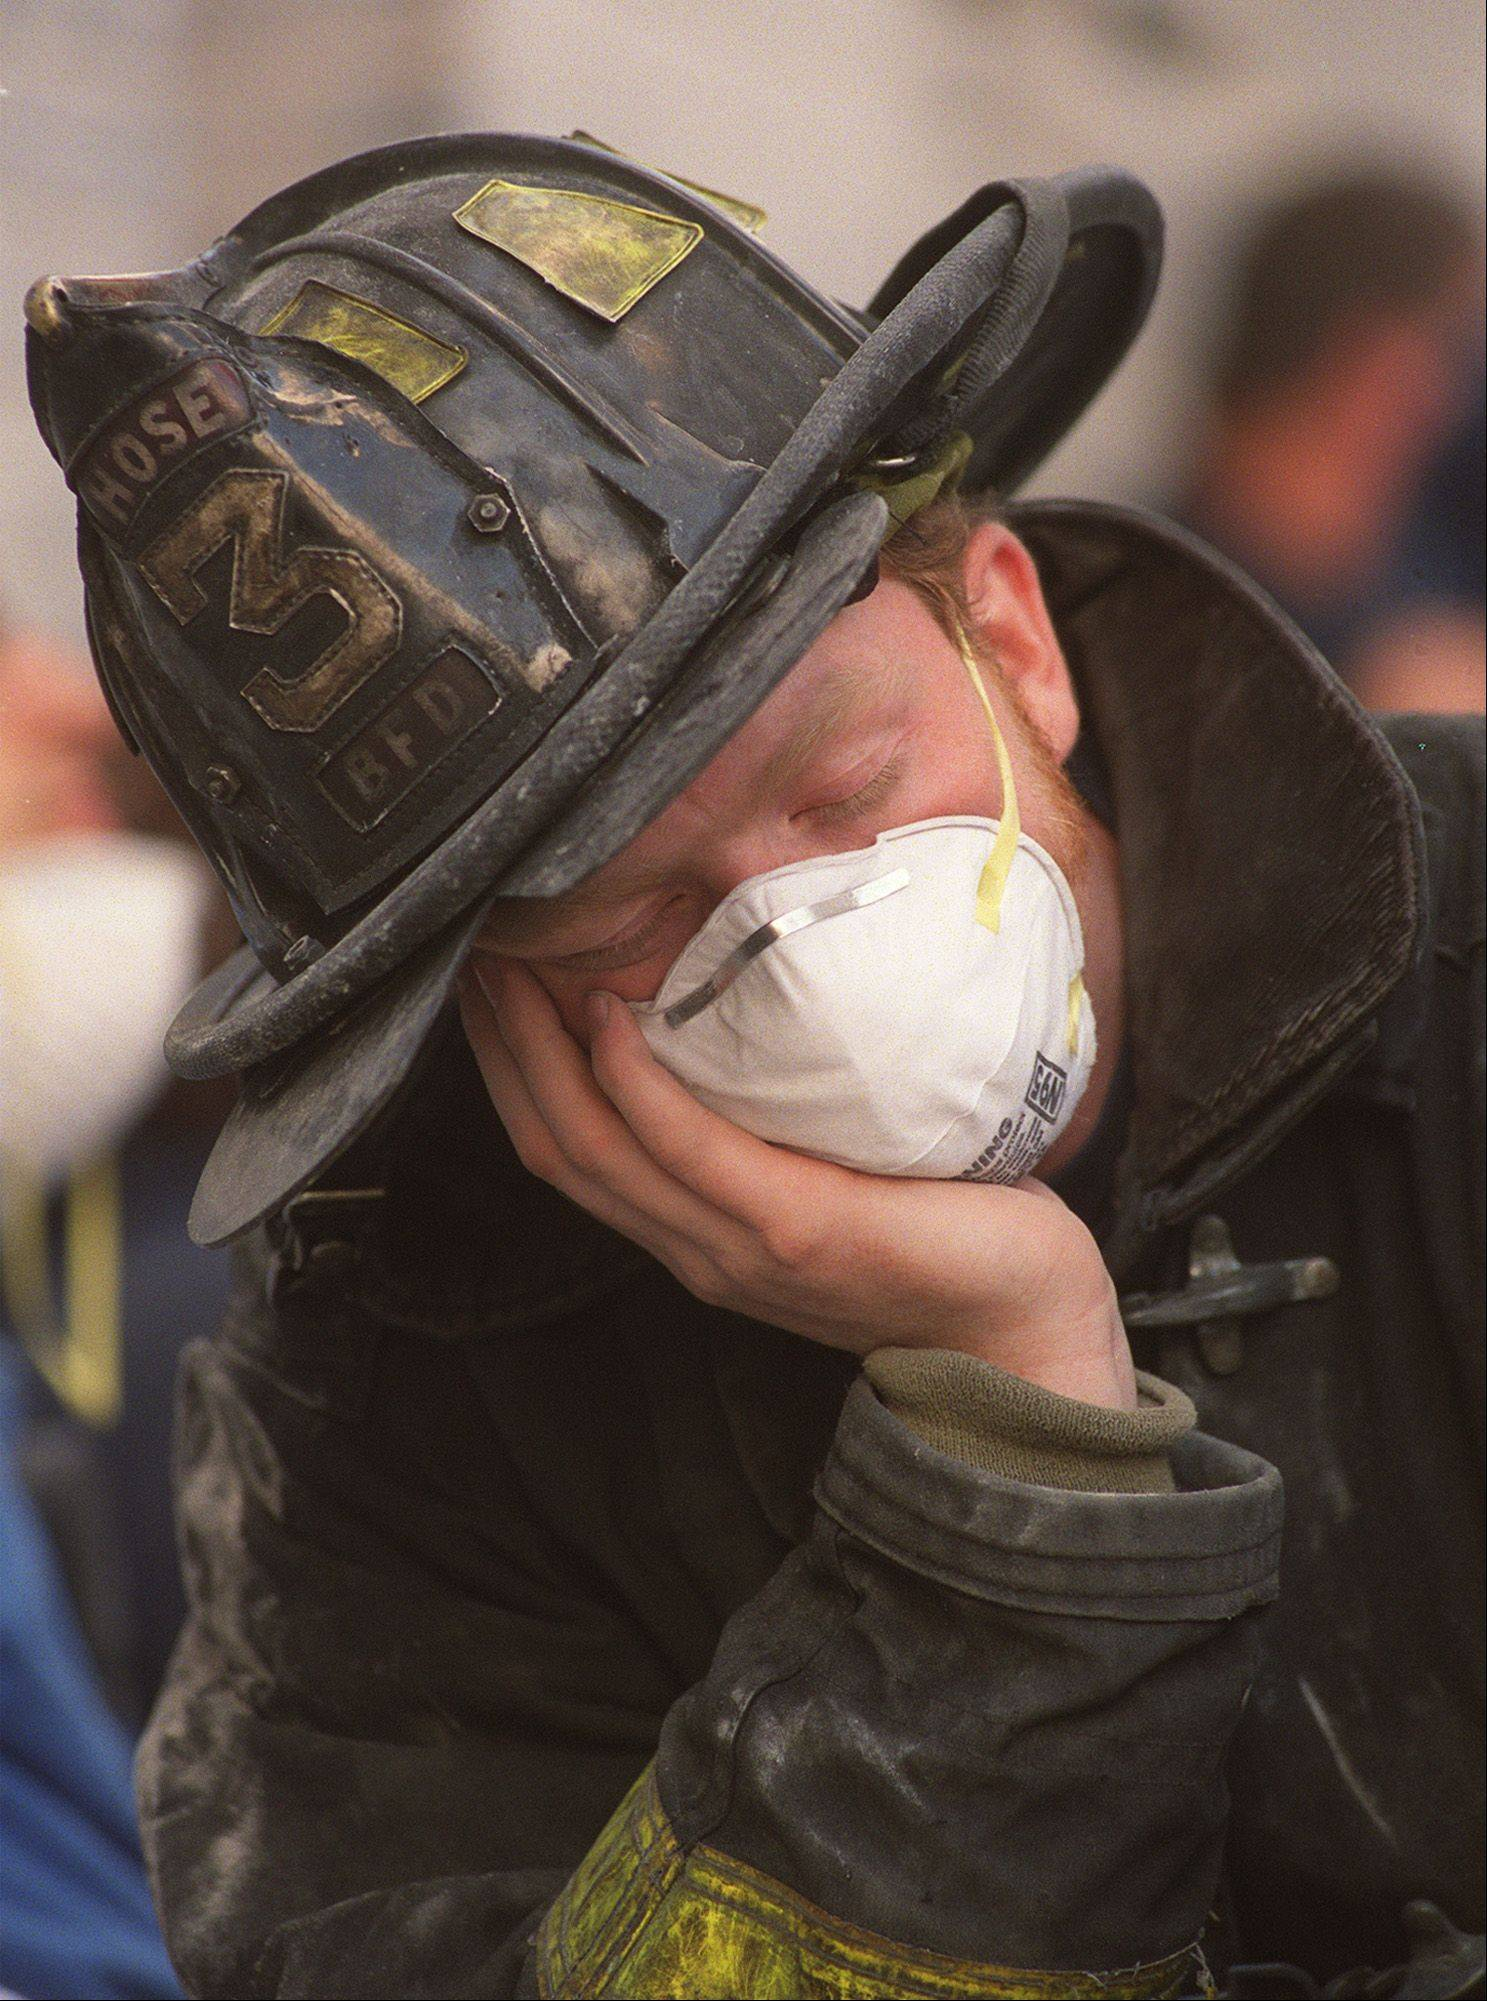 Bill Fennelly, a volunteer firefighter from Baldwin, N.Y., pauses for a moment at the World Trade Center collapse in New York, Thursday morning, Sept. 13, 2001.